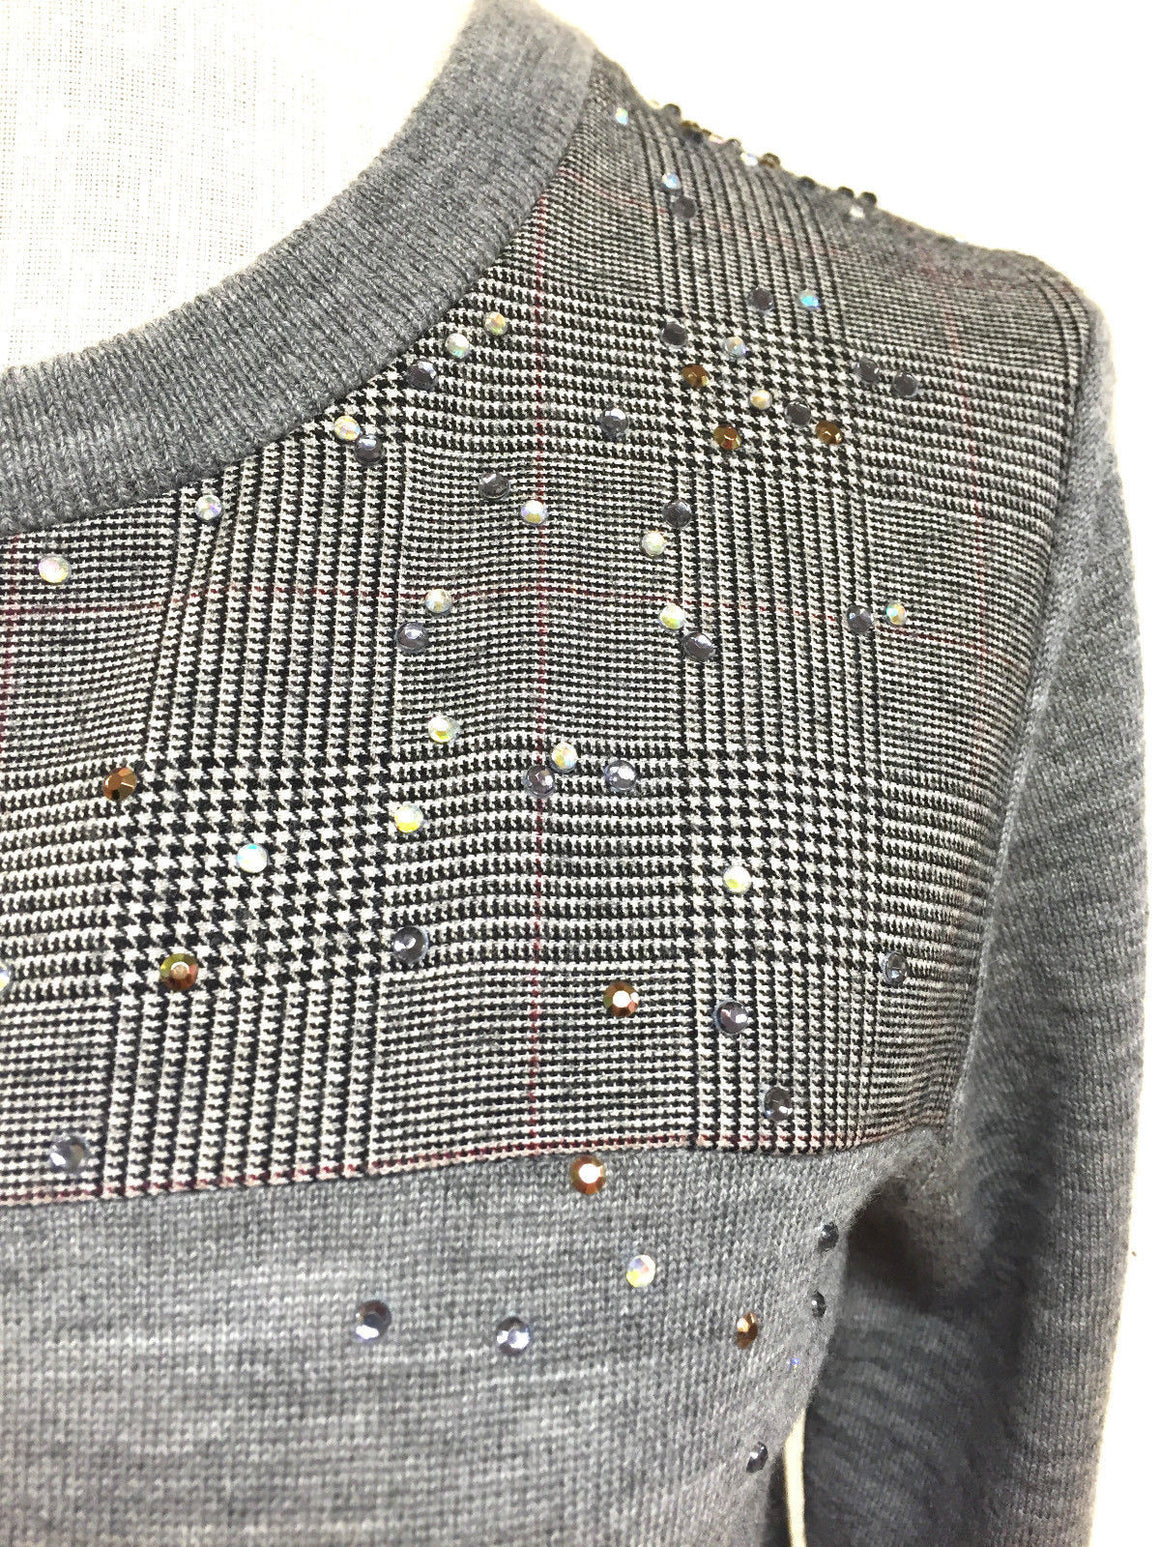 bisbiz.com J. CREW New with Tags Gray Merino Wool Glen Plaid Yoke Crystal Embellished Sweater Top Size: Small - Bis Luxury Resale